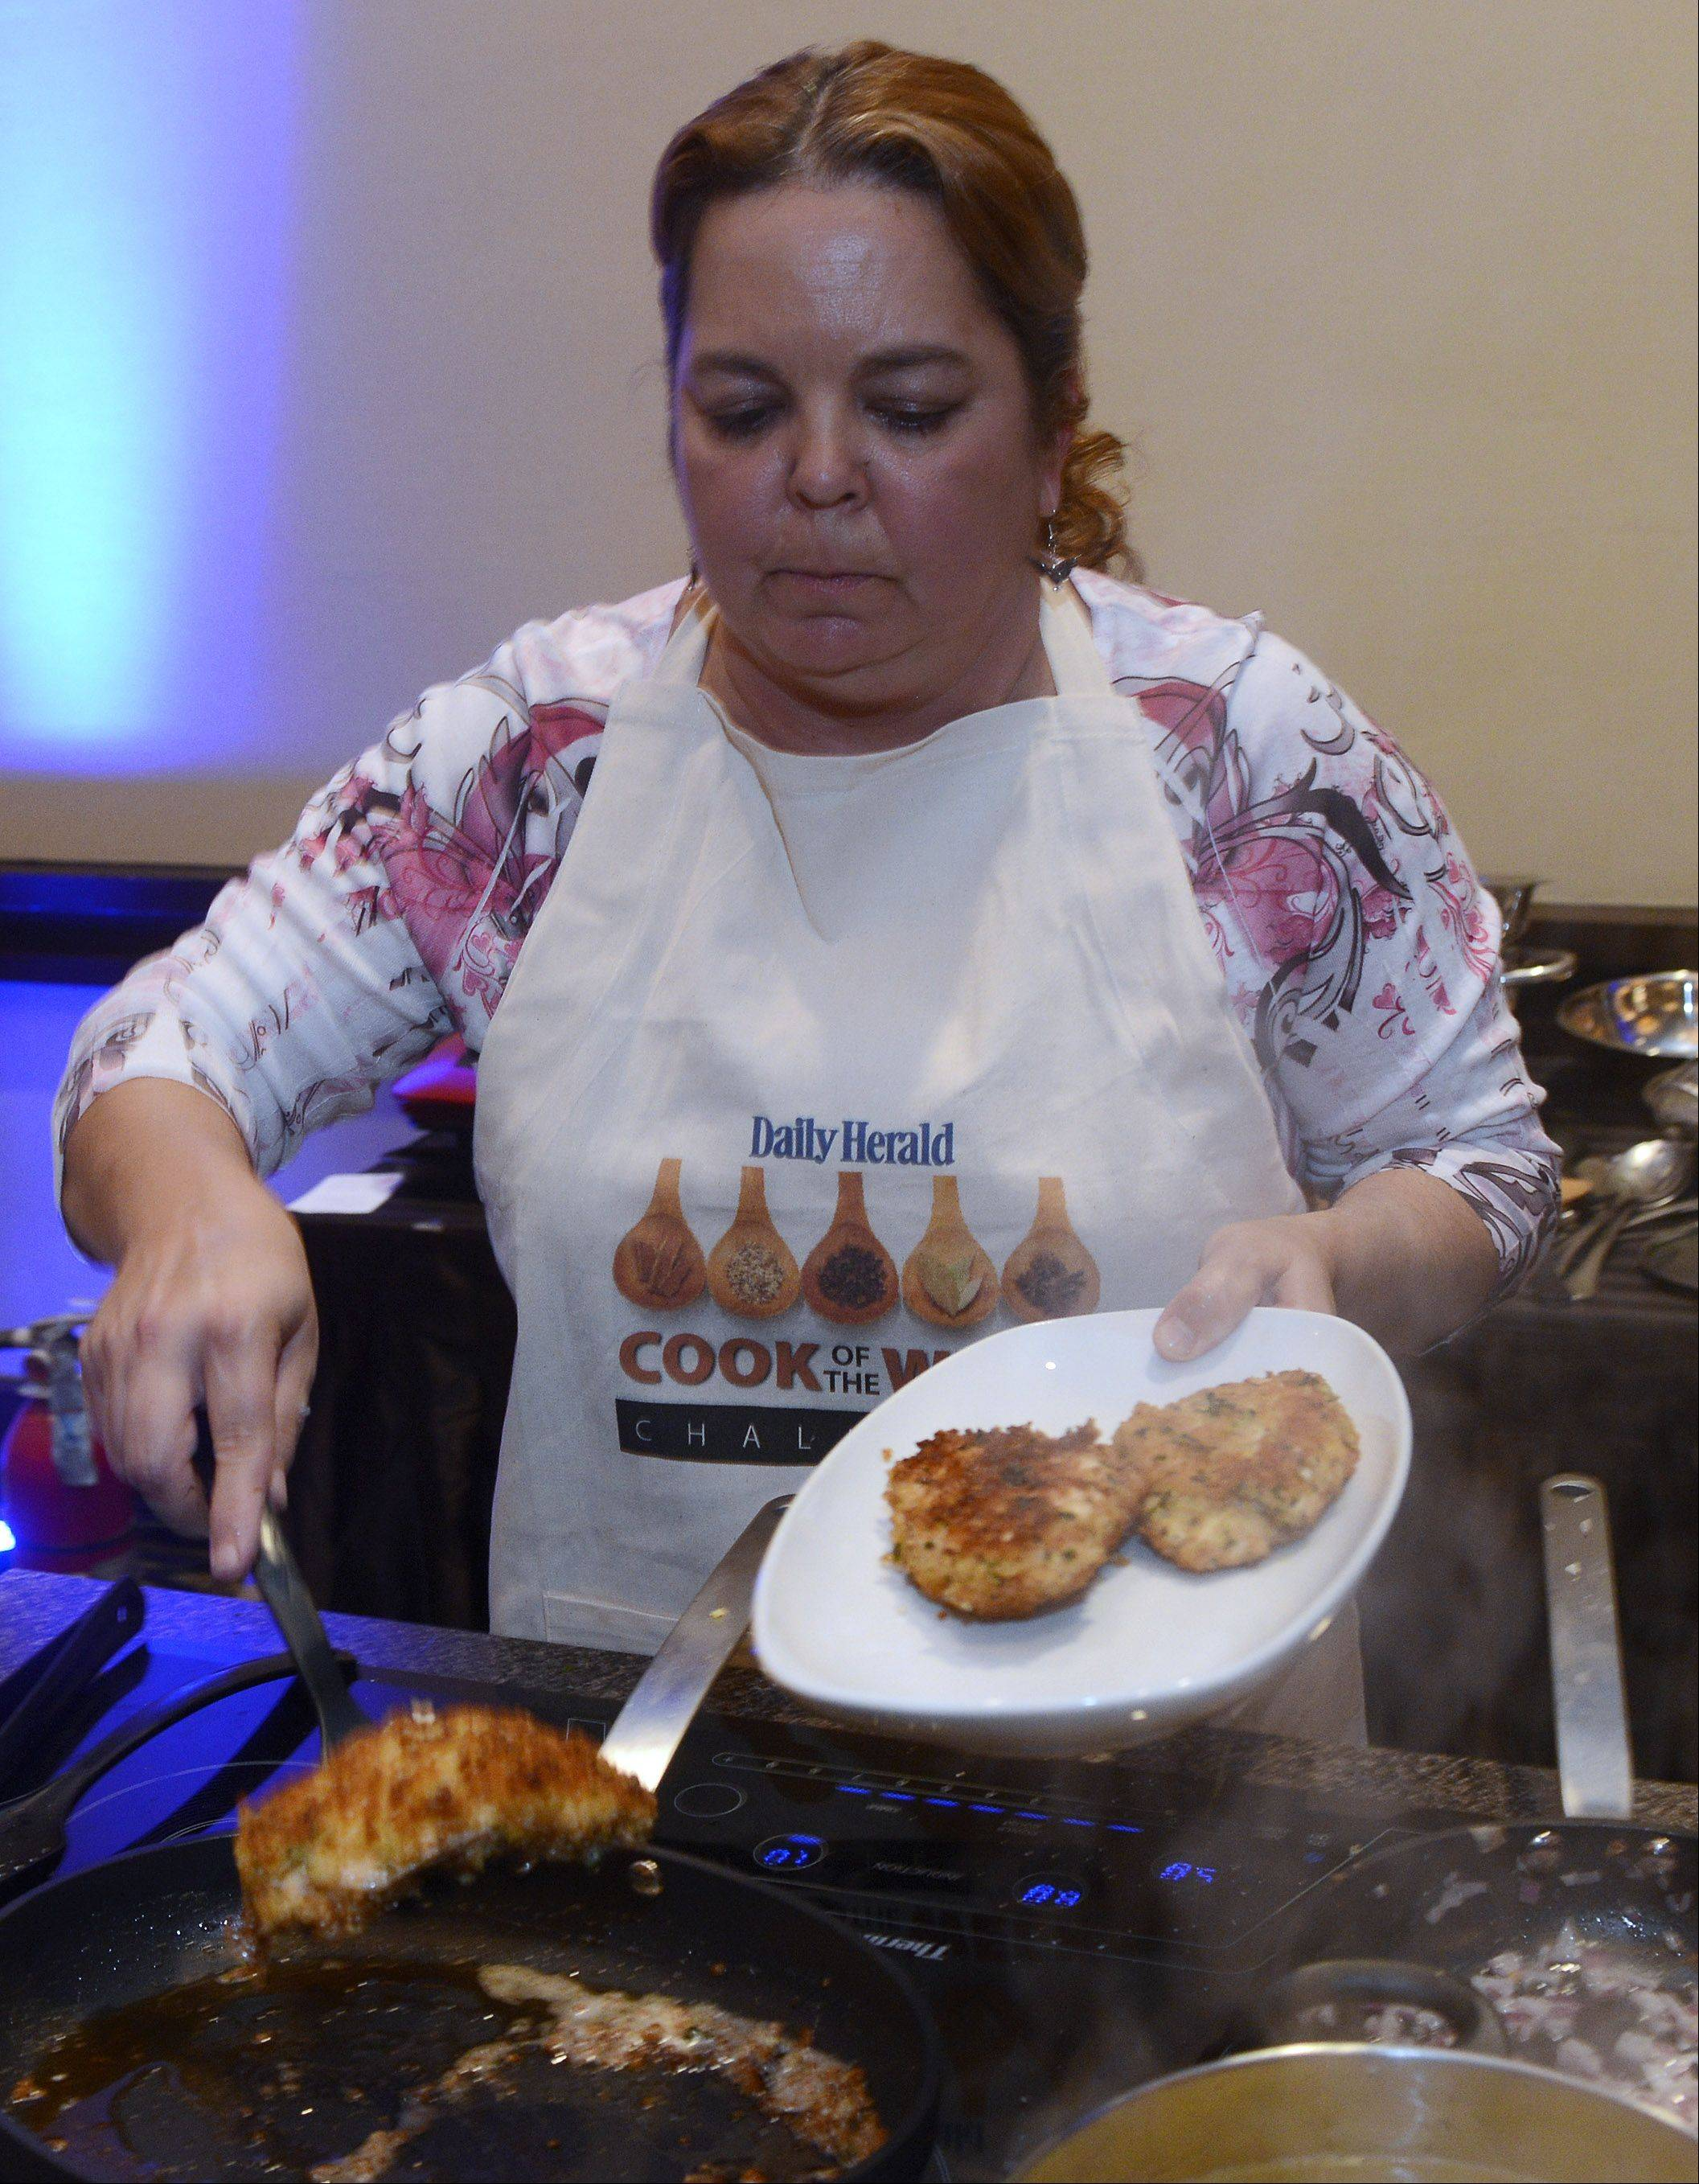 Lori Wiktorek of Aurora removes her chicken from the pan the Daily Herald Cook of the Week Cookoff finals, held at the Hyatt Regency Schaumburg Wednesday.